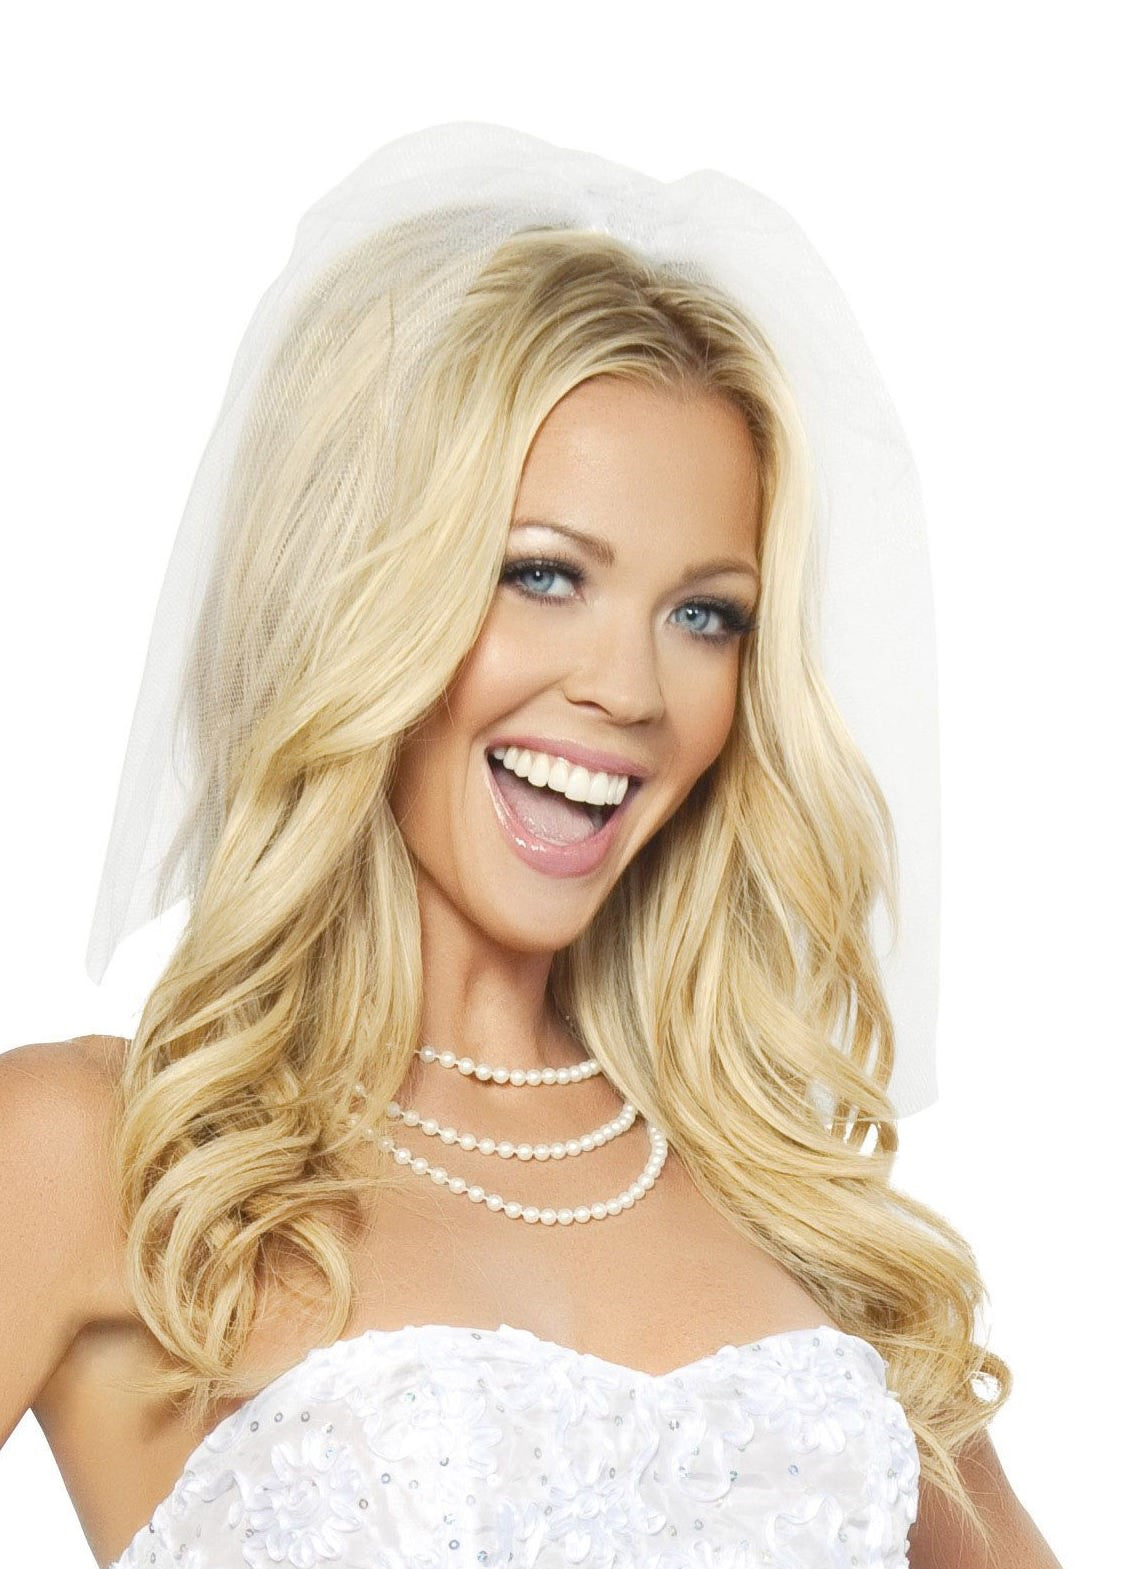 H4293 Bridal Veil ${description} | Roma Costume and Roma Confidential wholesale manufacturer of Women Apparel bulk world wide wholesale and world wide drop ship services for Adult Halloween Costumes, Sexy and Elegant Lingerie, Rave Clothing, Club wear, and Christmas Costumes. Accessories, Roma Costume, Inc., Roma Costume, Roma Confidential, Wholesale clothing, drop ship, drop ship service, Wholesale Lingerie, Wholesale Adult Halloween Costumes, Rave Clothing, EDM Clothing, Festival Wear, Christmas Costumes, Clubwear, Club wear.